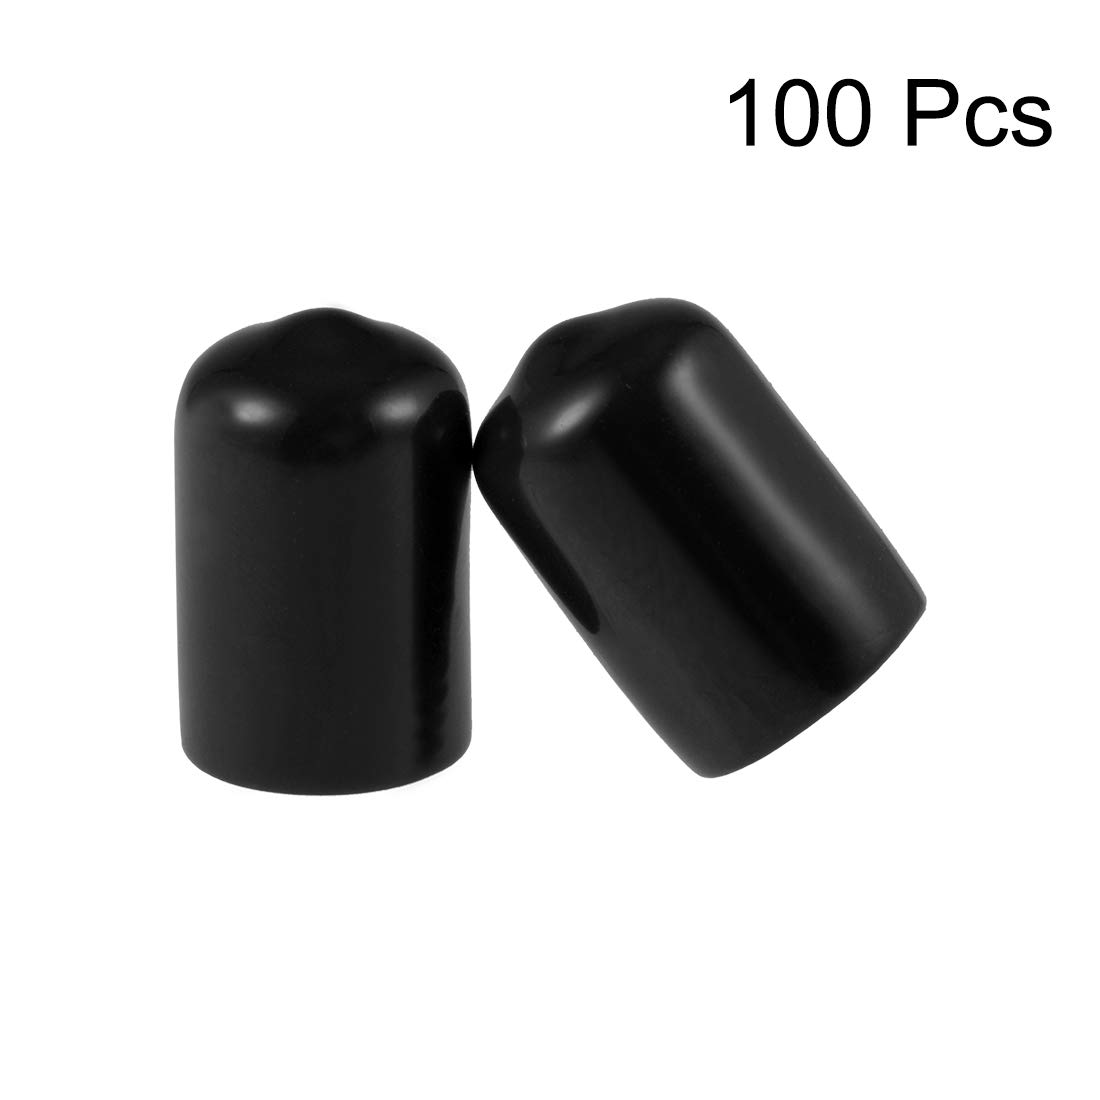 uxcell Screw Thread Protectors 3//8-inch ID Round End Cap Cover Flexible Black Tube Caps 100pcs